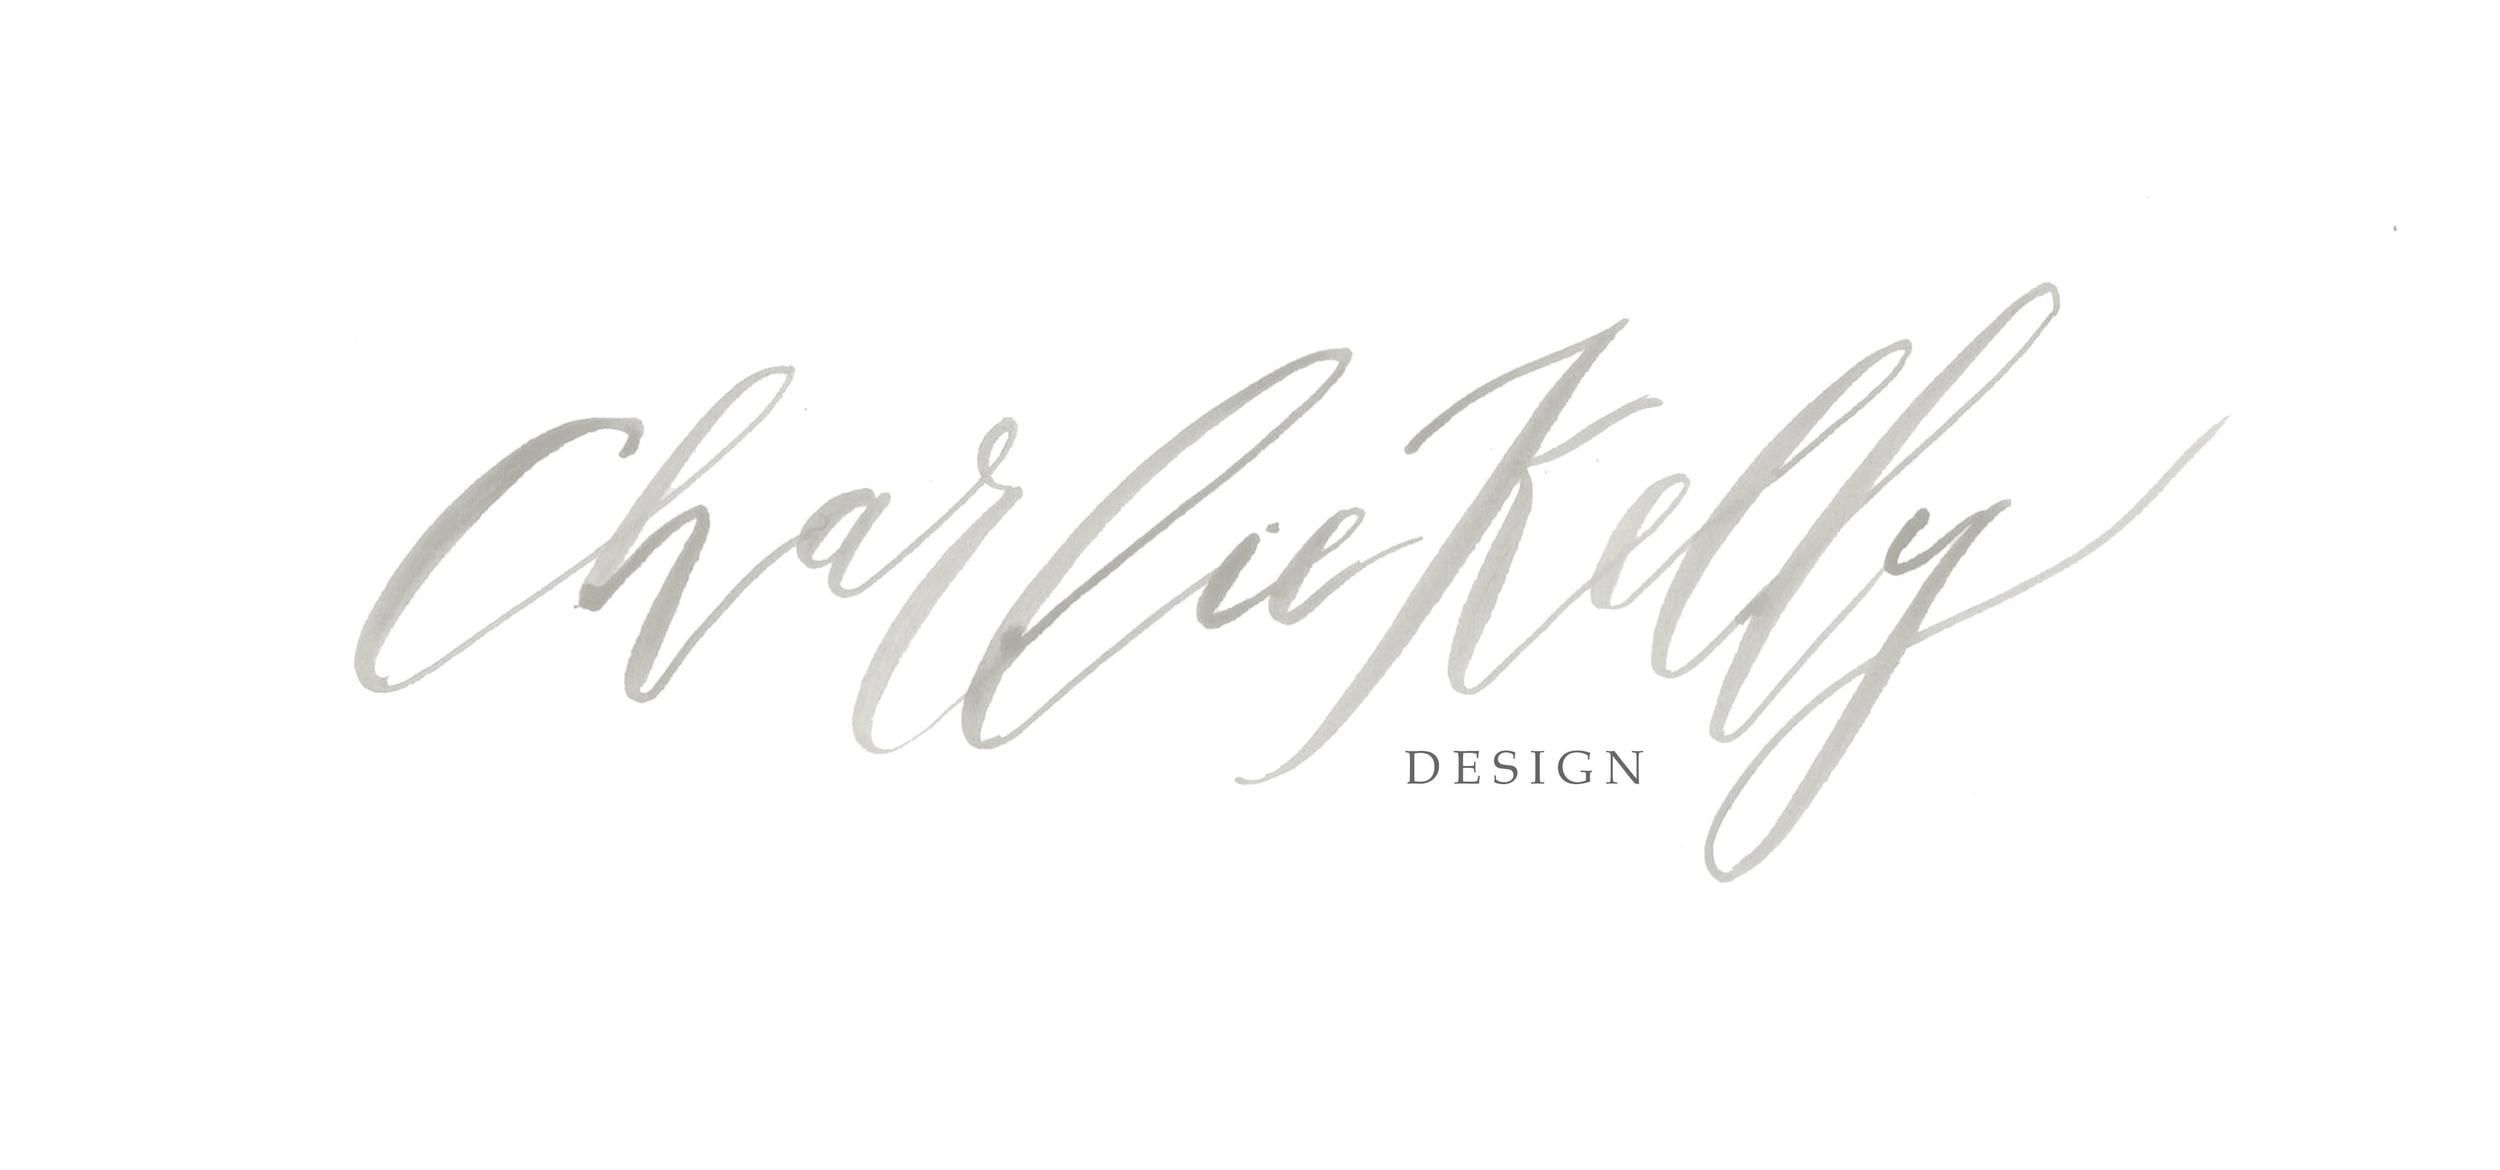 Tier iii calligraphywatercolor logo submarkmonogram tier iii calligraphywatercolor logo submarkmonogram illustration crest business card package magicingreecefo Images